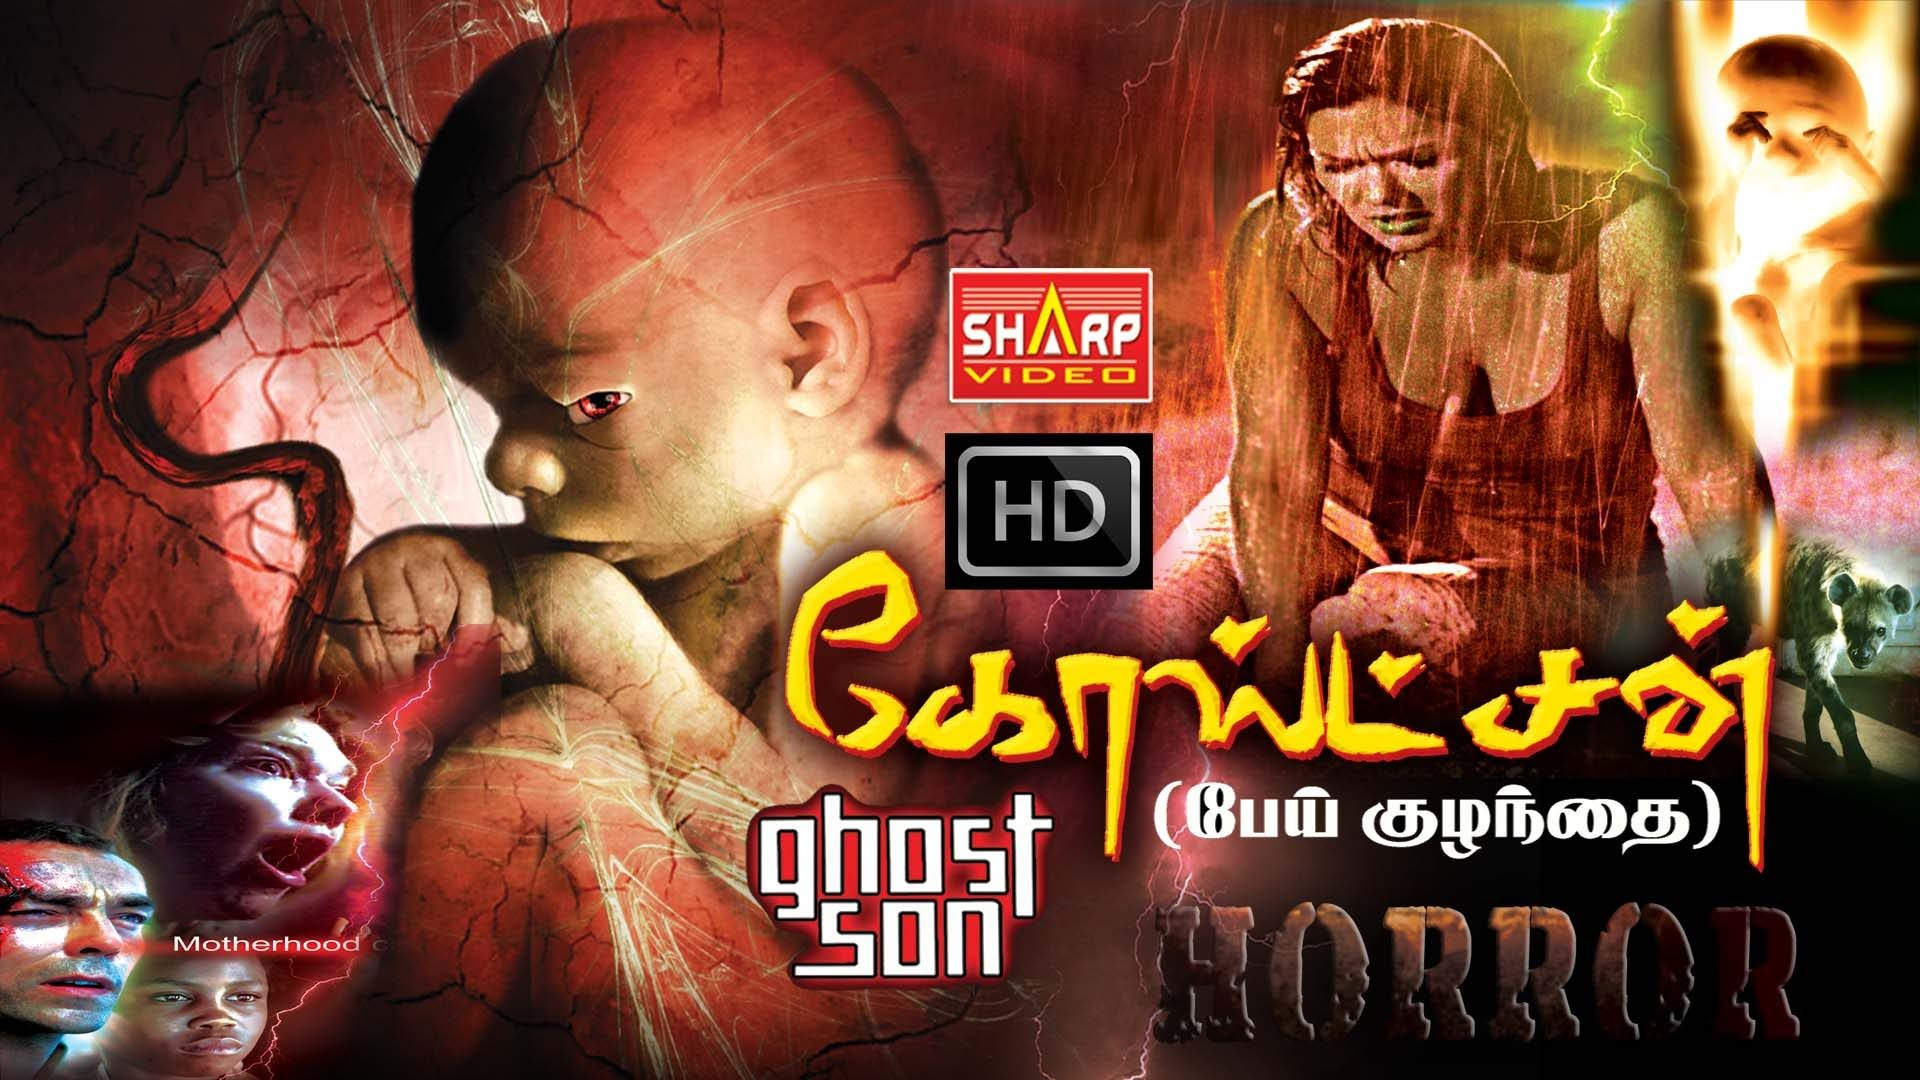 GhostSon Hollywood HD movie in tamil version HORROR